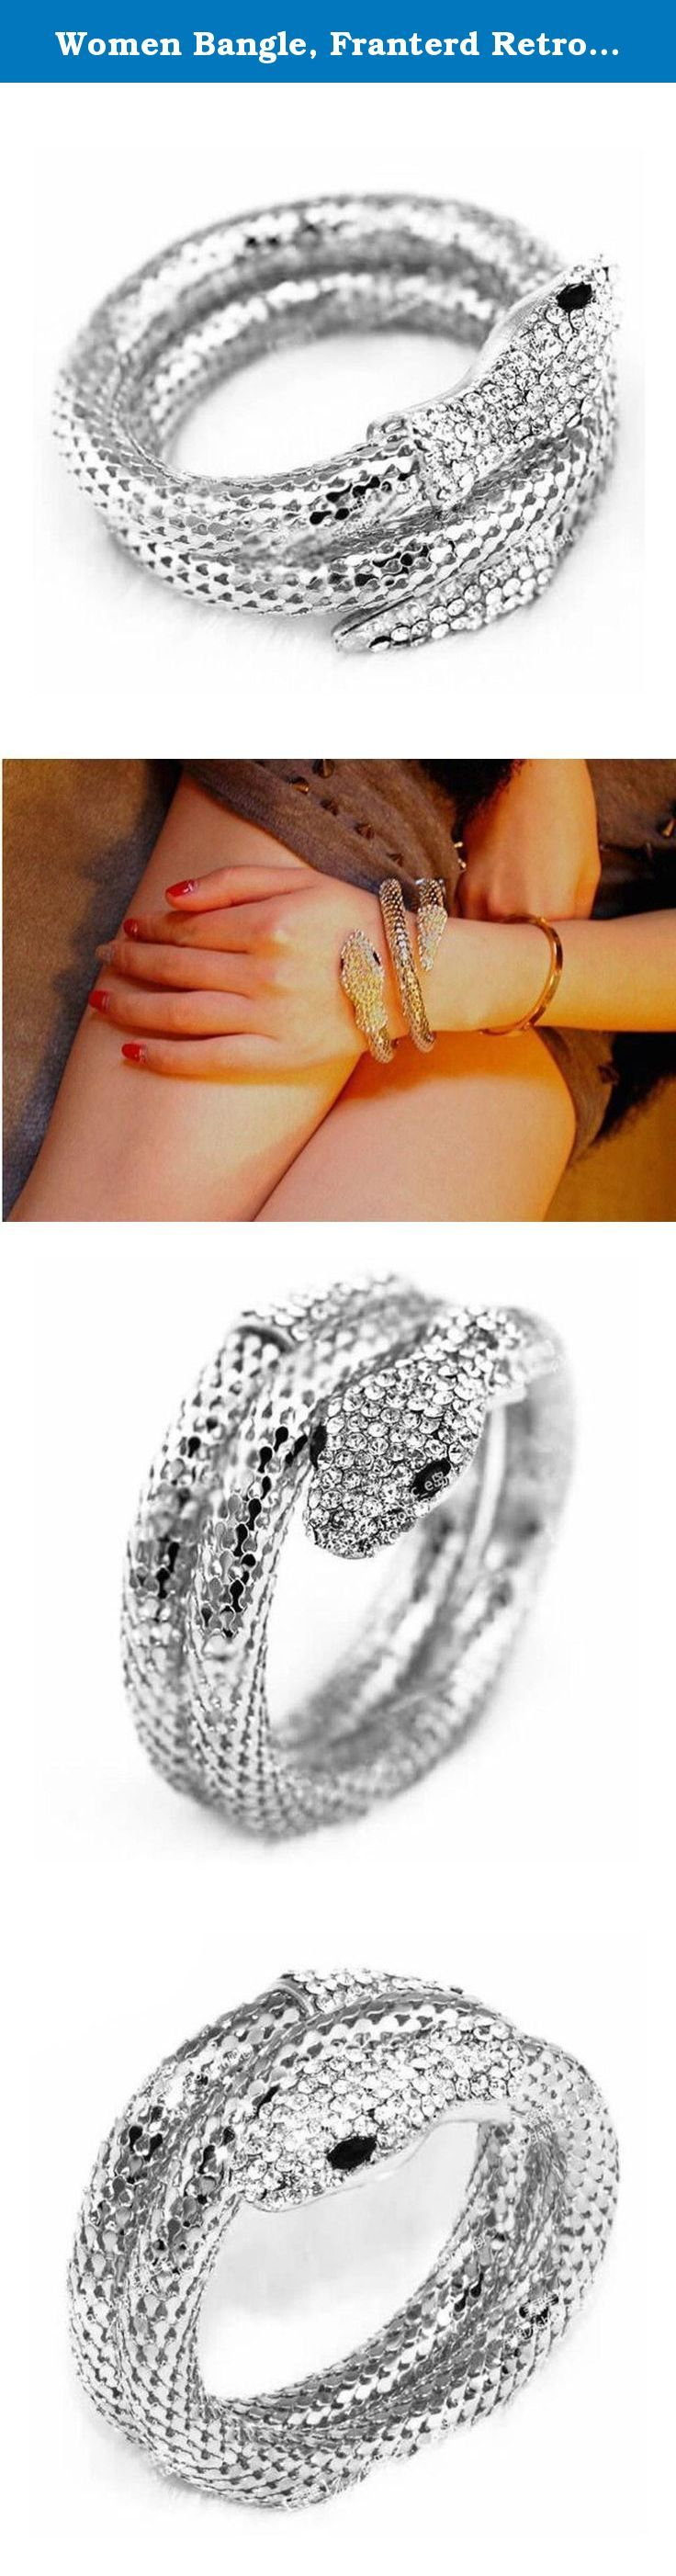 Women Bangle, Franterd Retro Punk Rhinestone Stretch Snake Cuff Bracelet. Feature: 100% brand new and high quality. Quantity: 1 Gender: Women, Girl Wonderful gift for you and your female friends Catch this beautiful accessories for you Package Content: 1X Vintage Retro Punk Rhinestone Curved Stretch Snake Cuff Bangle Bracelet (NO Retail Box. Packed Safely in Bubble Bag).